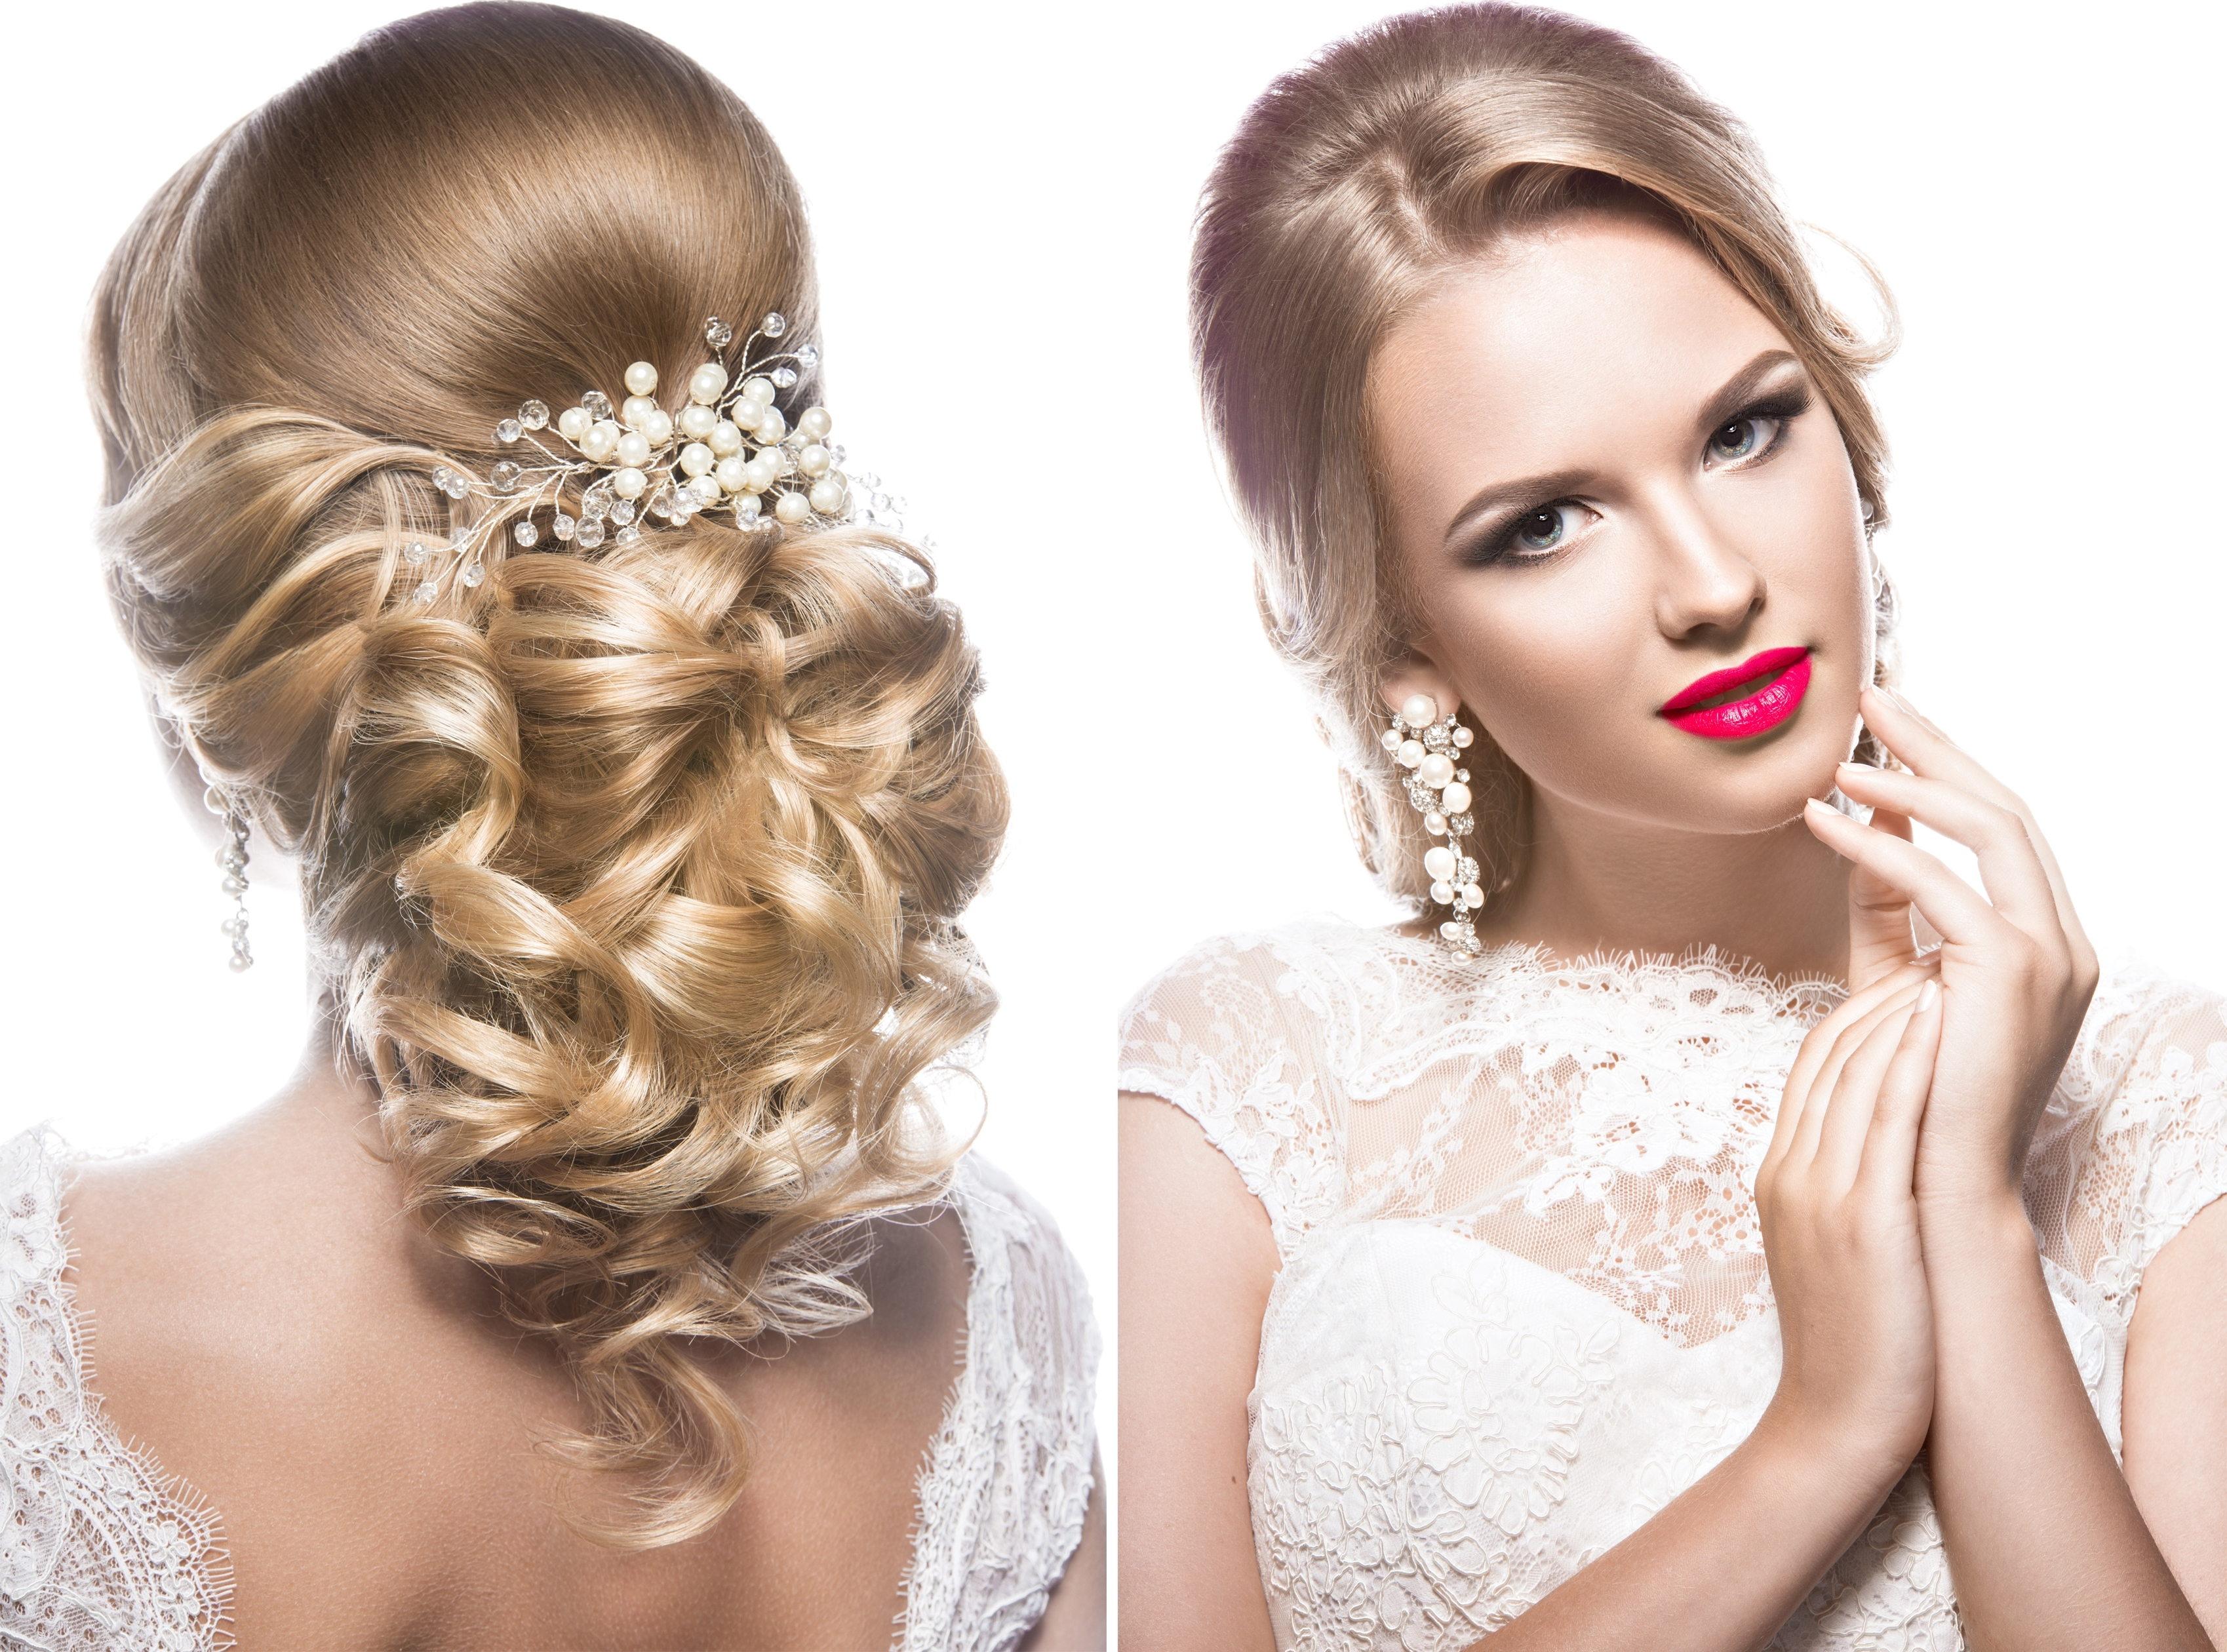 How To Get Beautiful Hair On Your Wedding Day With Hair Extensions For Current Wedding Hairstyles With Extensions (View 3 of 15)